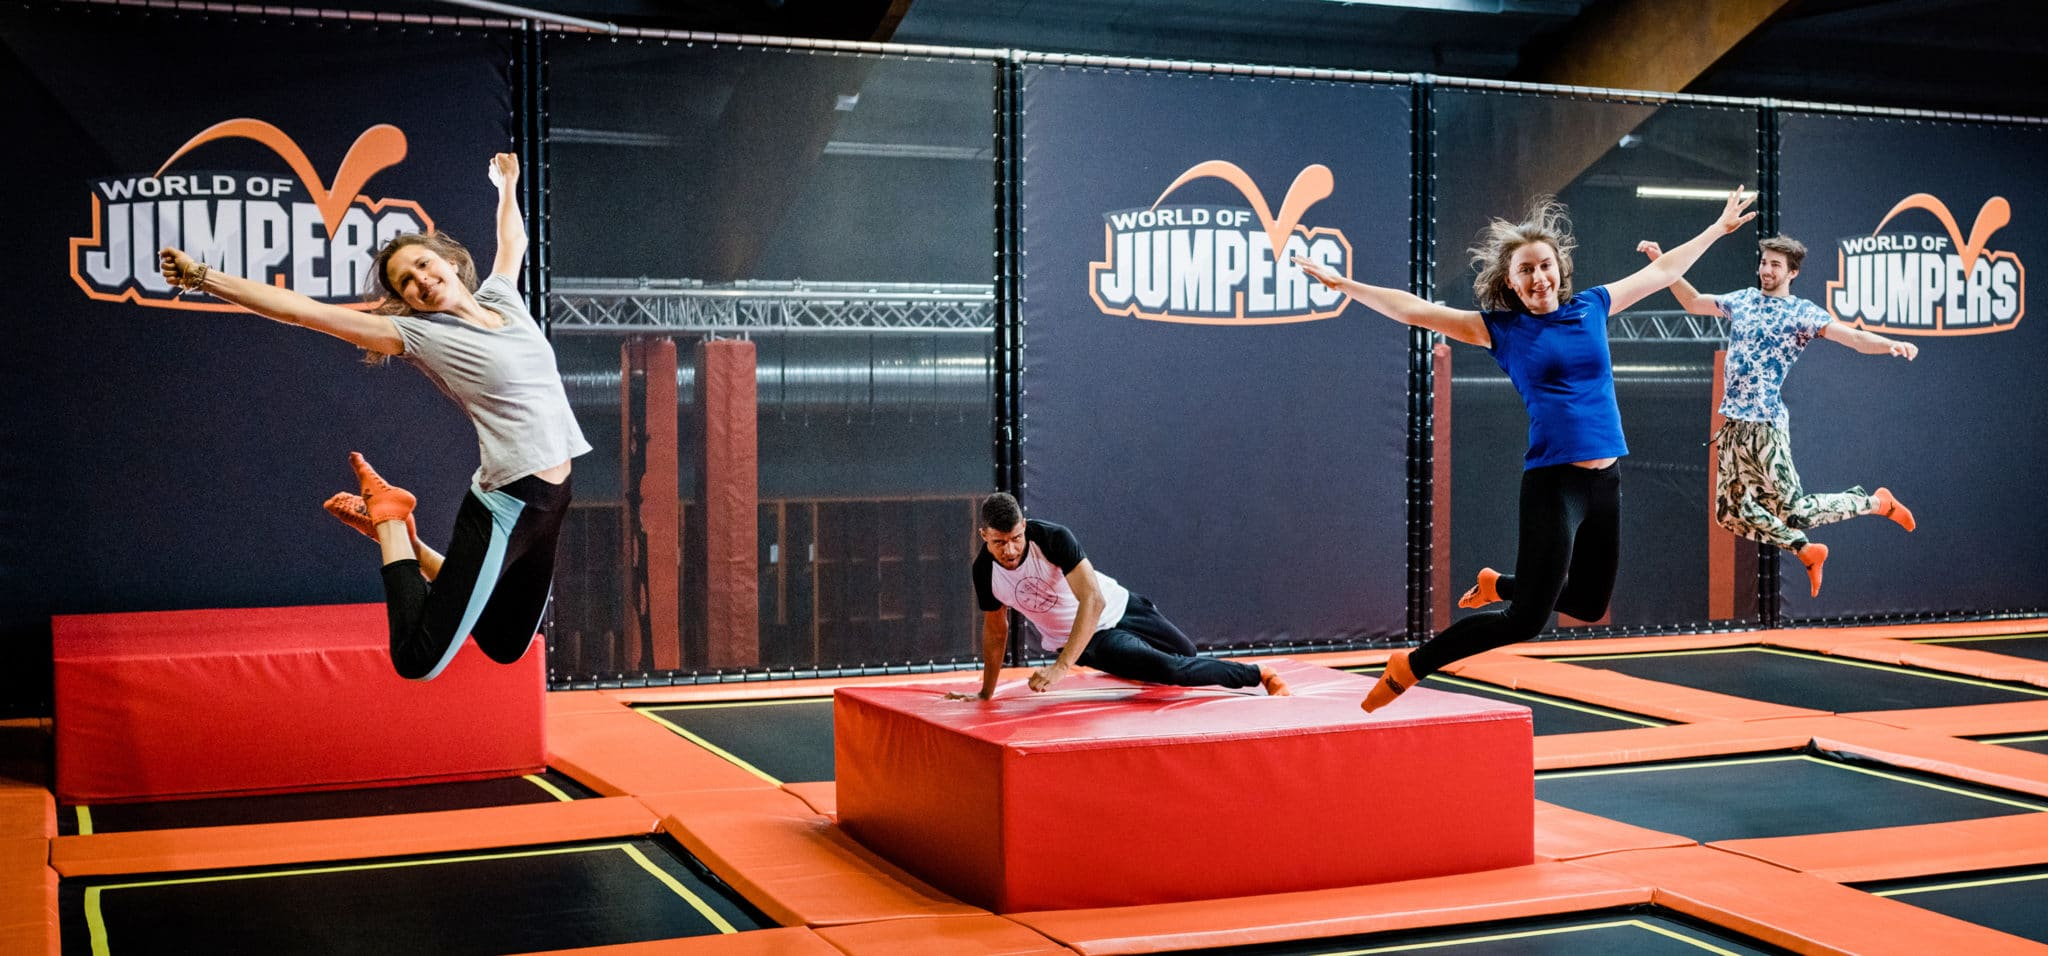 World of Jumpers